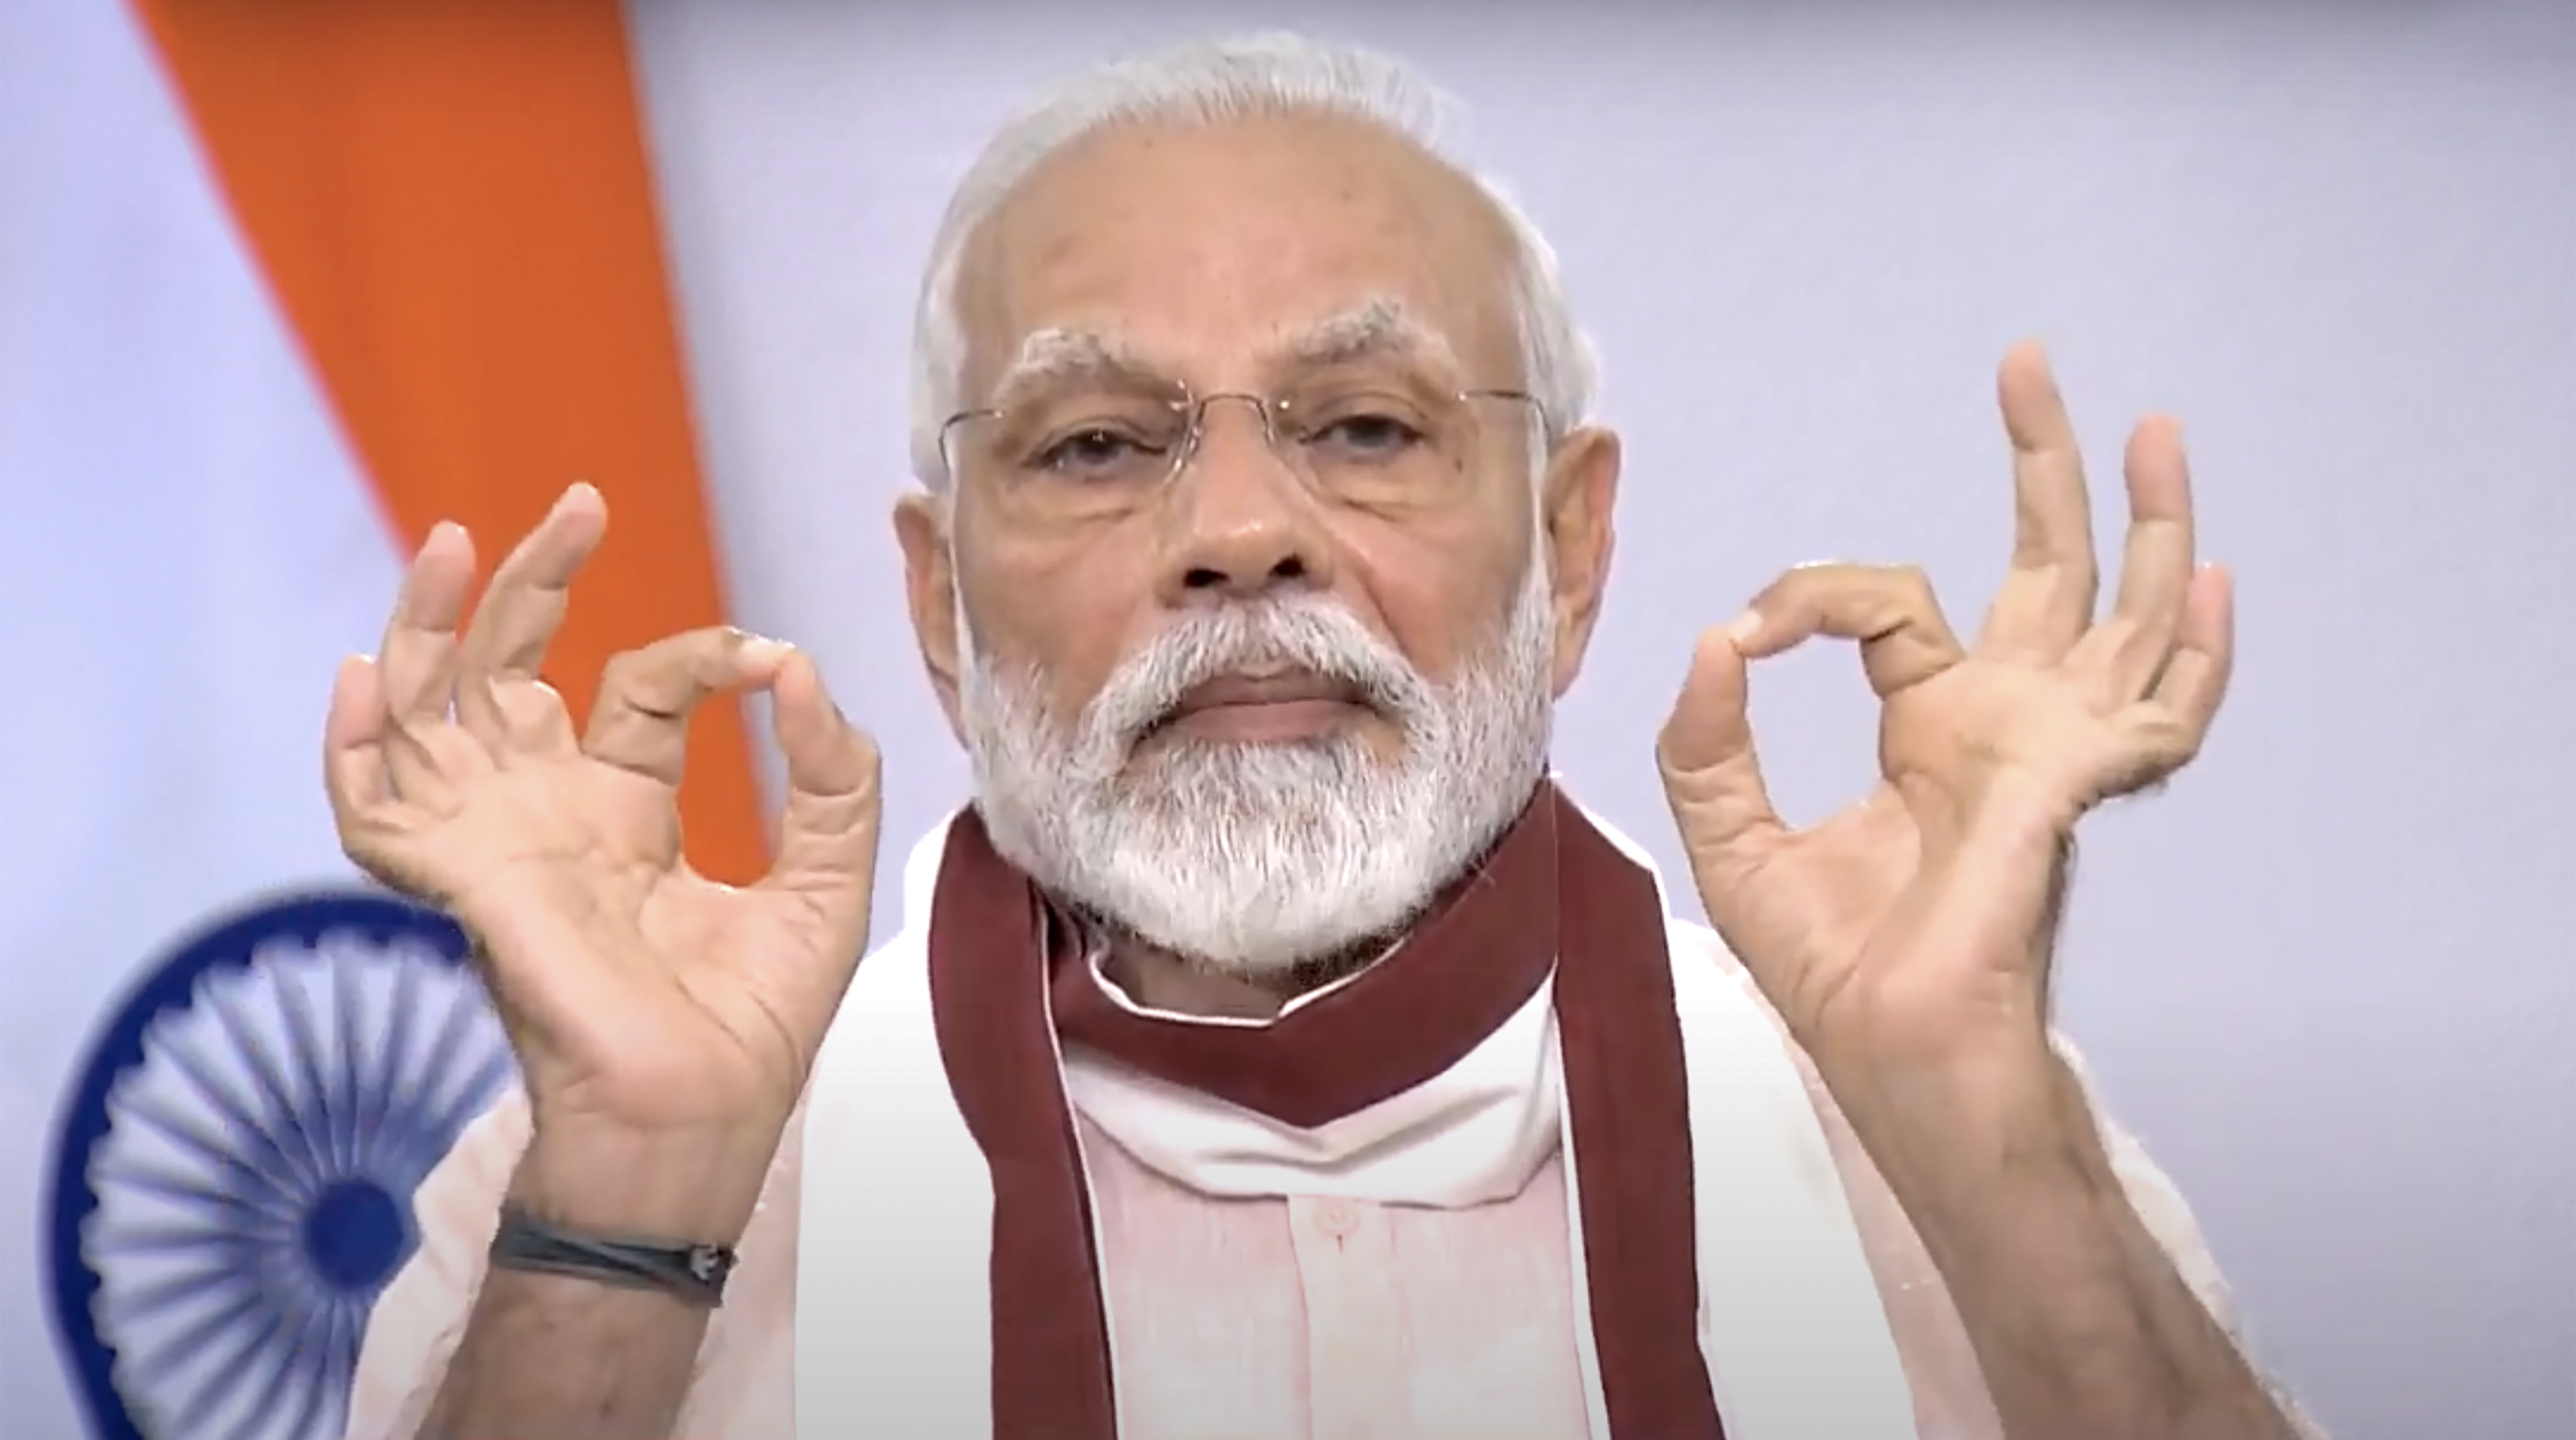 Prime Minister Narendra Modi addresses the nation during the ongoing nationwide Covid-19 lockdown, in New Delhi, Tuesday, May 12, 2020.